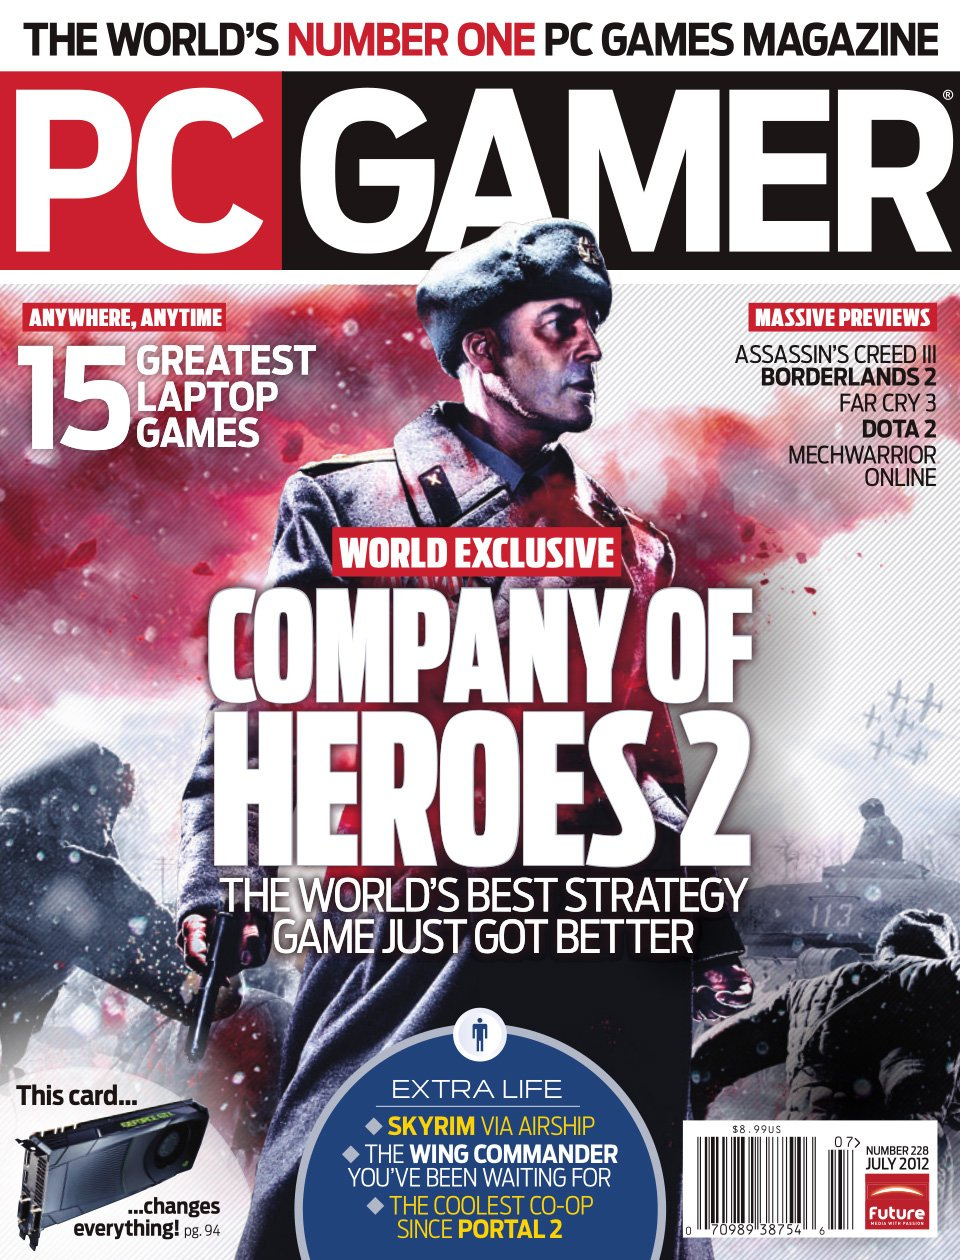 PC Gamer Issue 228 (July 2012)